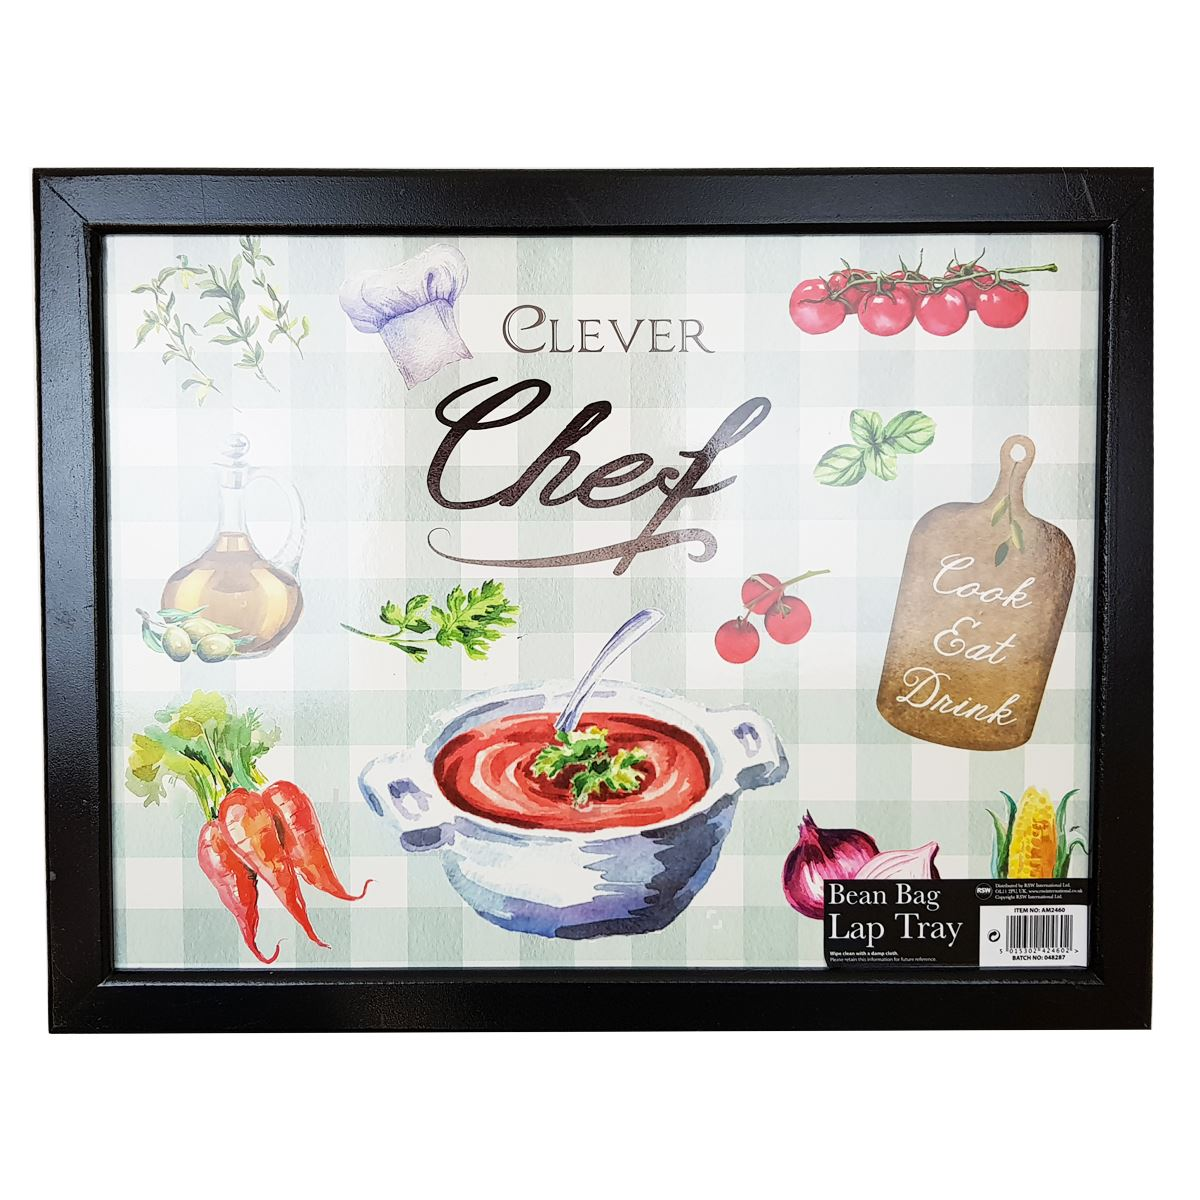 Bean Bag Lap Tray 44x34cm Clever Chef Design